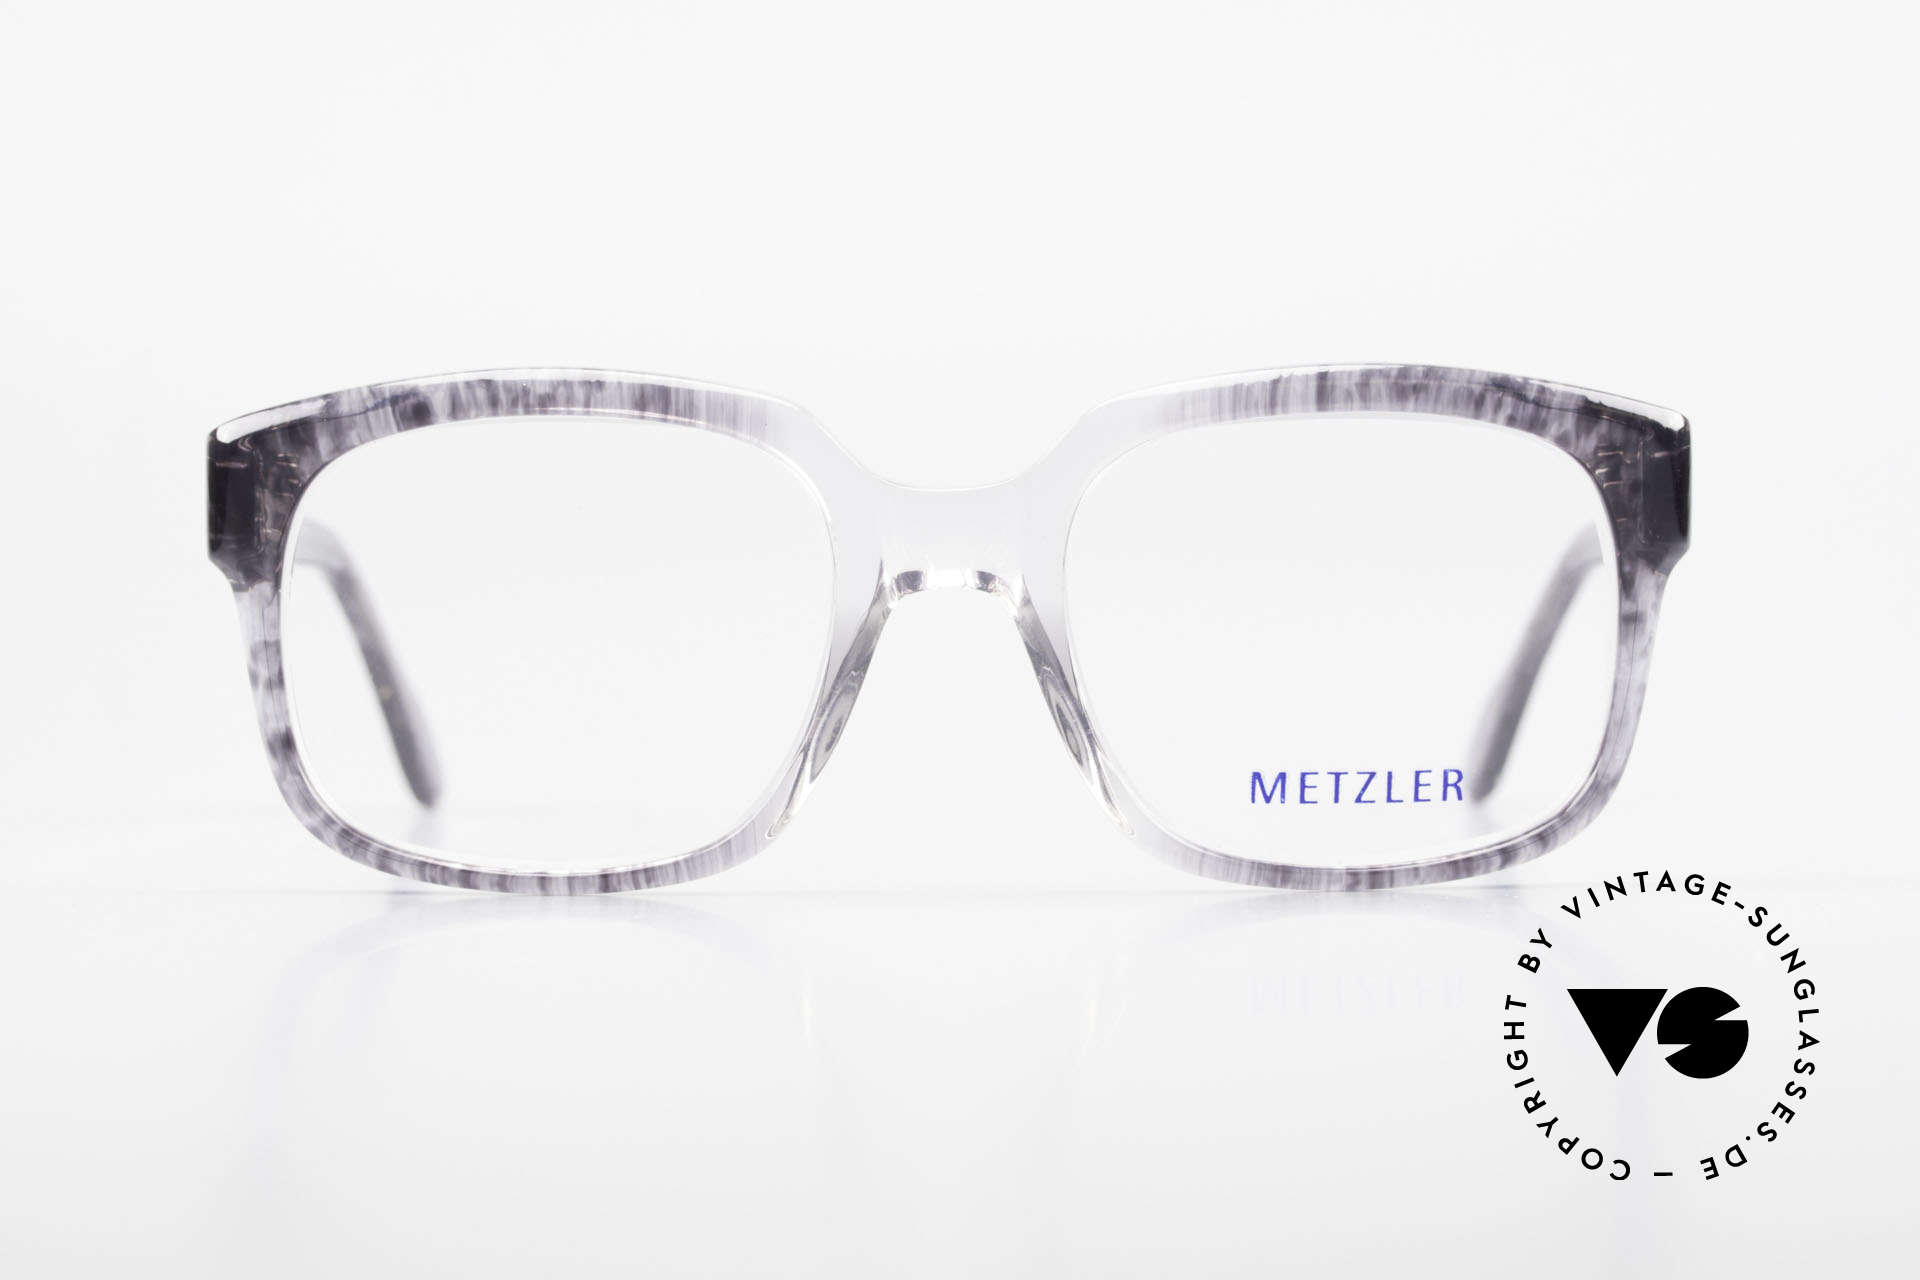 Metzler 7665 Medium 90's Old School Eyeglasses, genuine old original from the late 80's / early 90s, Made for Men